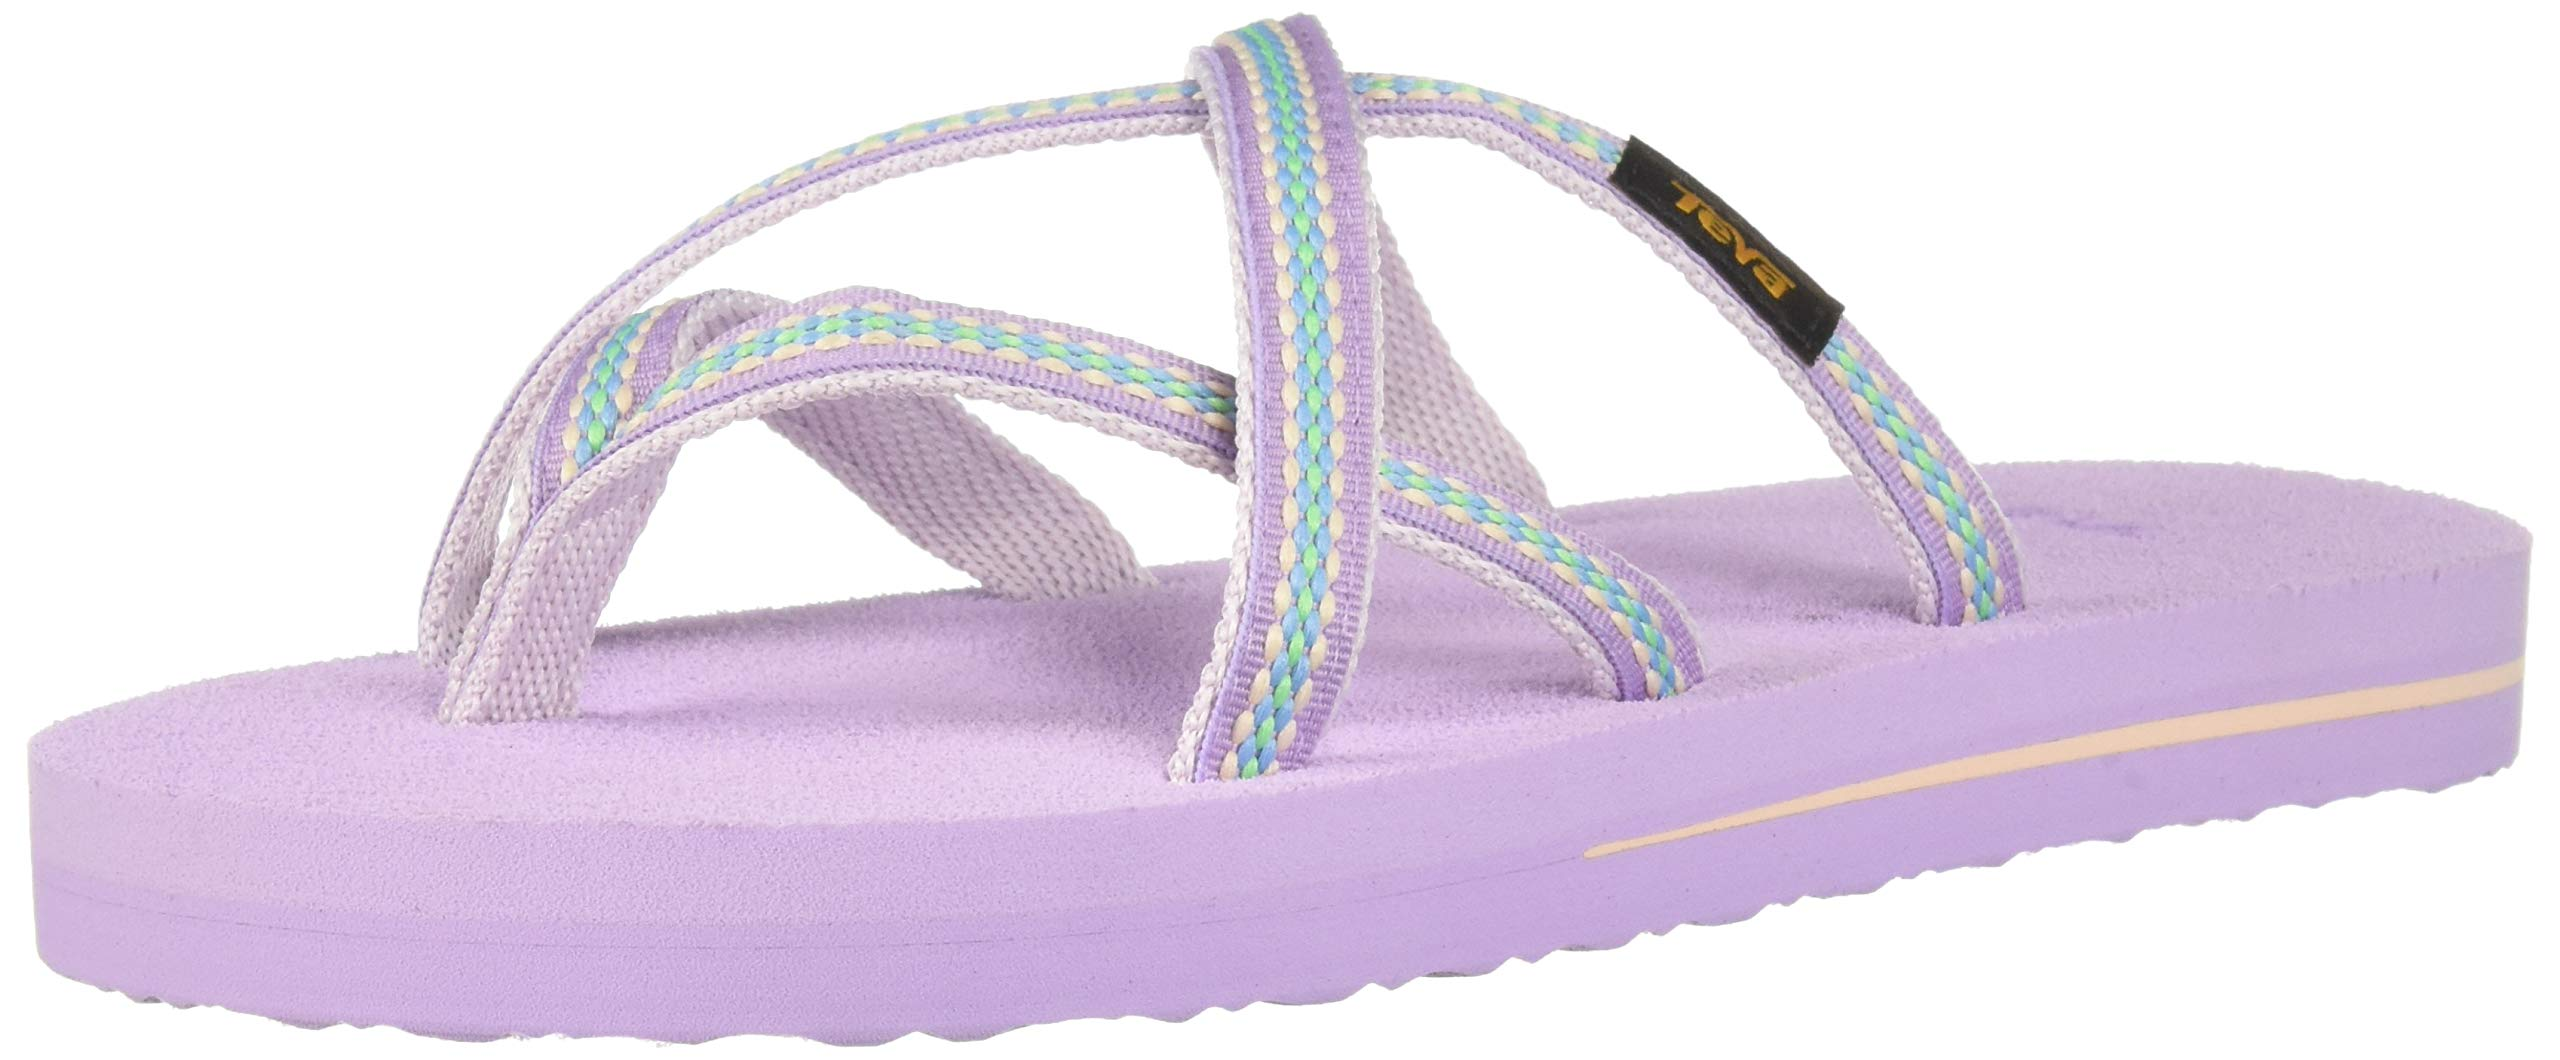 Teva Girls' Y Olowahu Sport Sandal, Lindi Orchid Bloom, 7 Medium US Big Kid by Teva (Image #7)